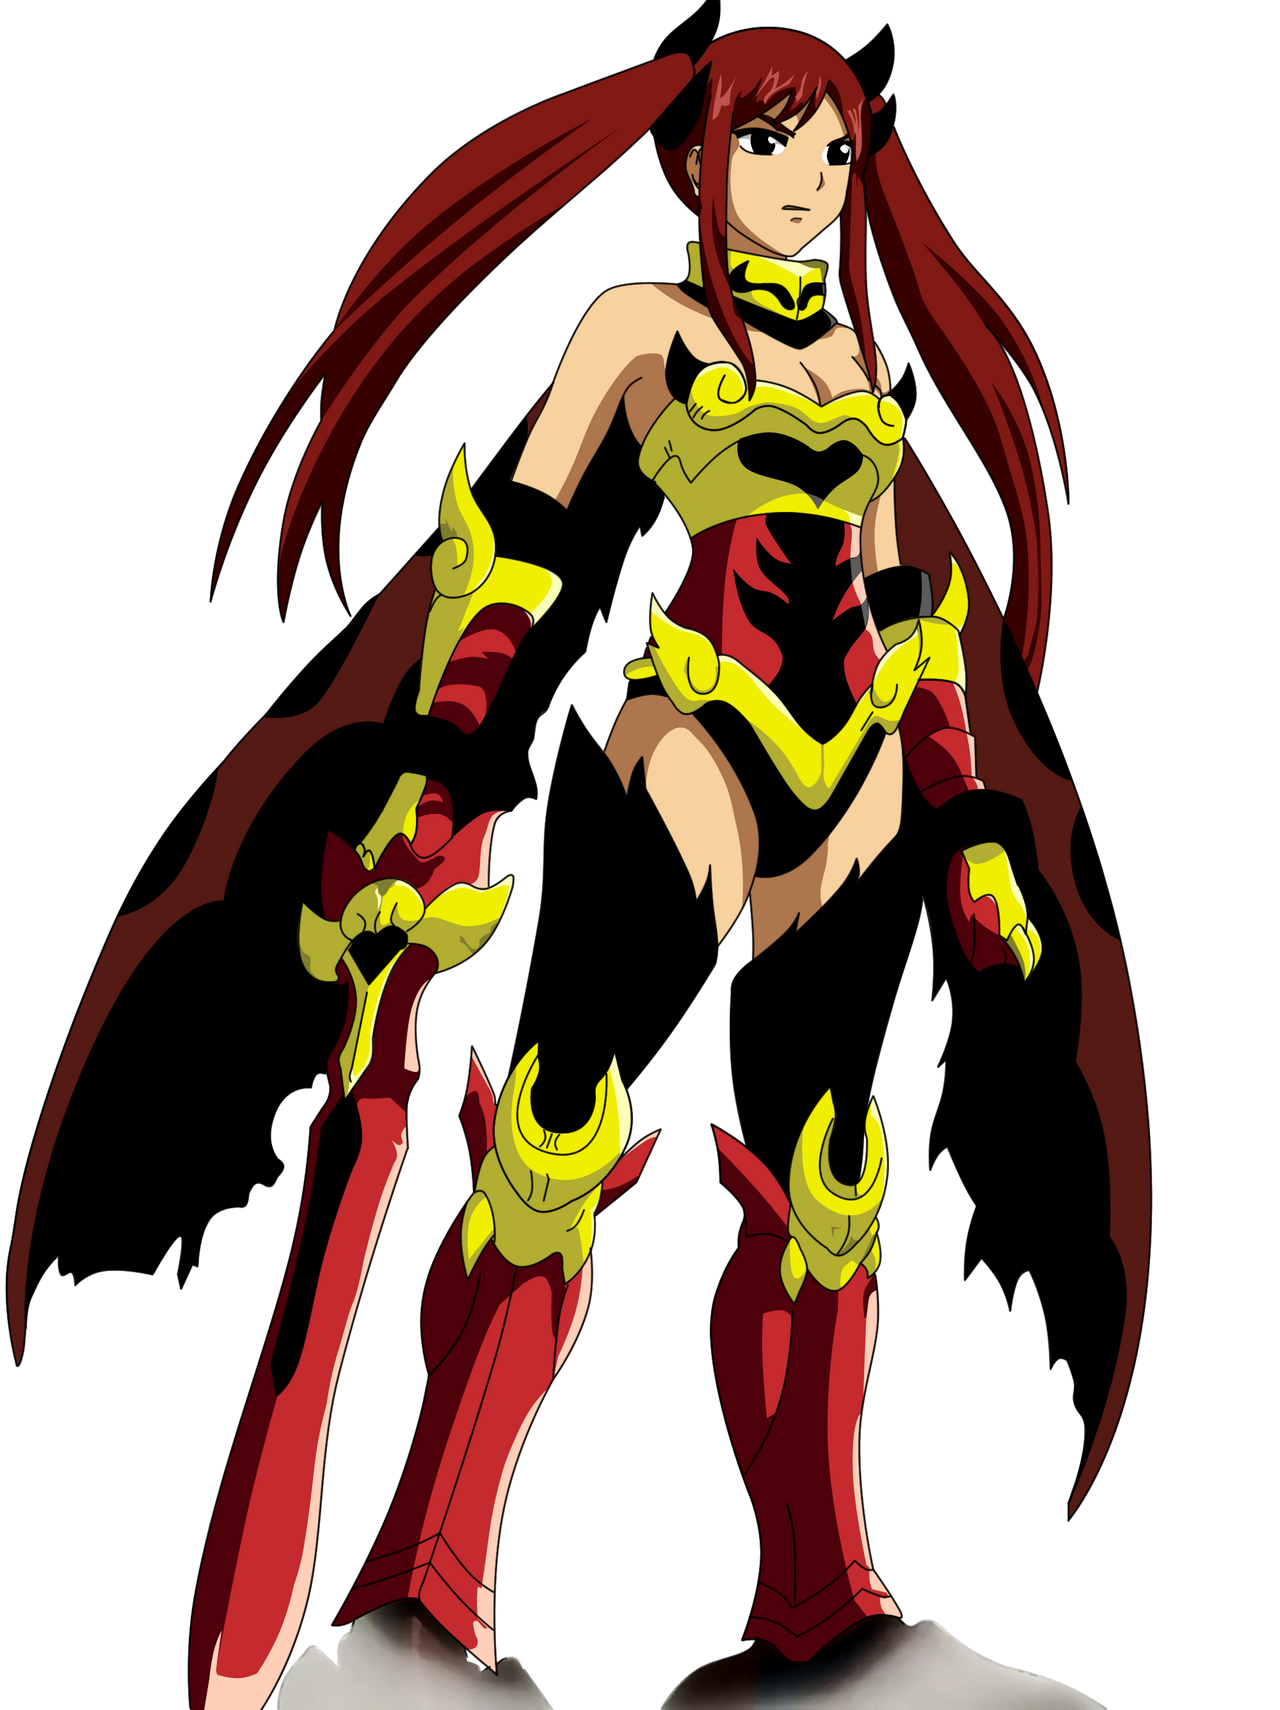 Erza scarlet flame empress arm fairy tail by ice do on - Image fairy tail erza ...